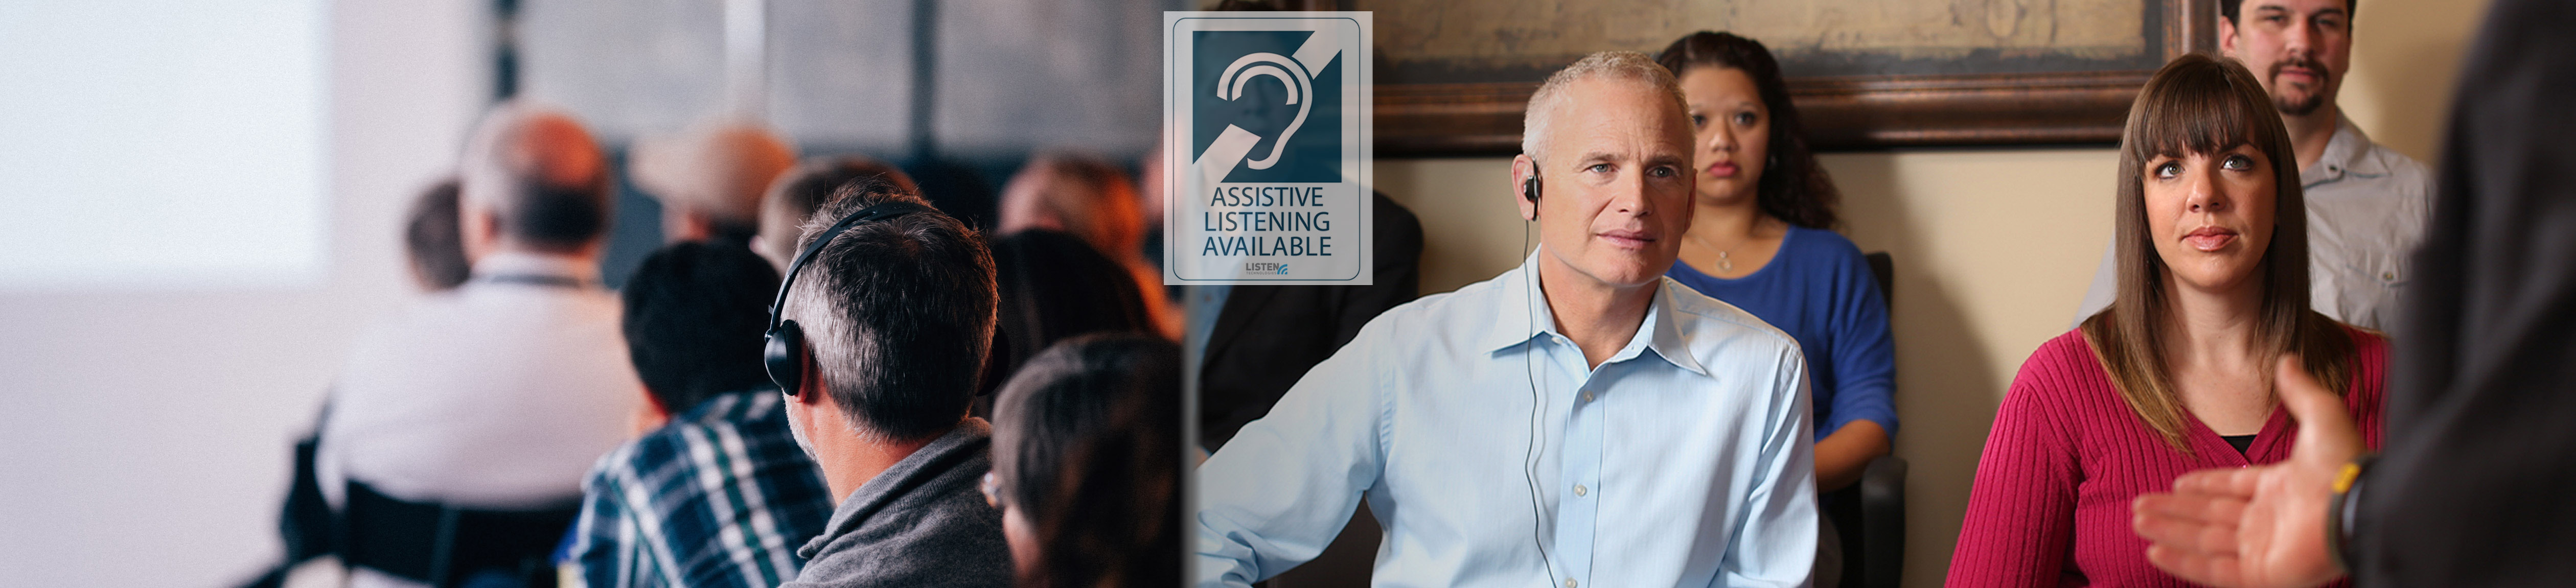 assistive_listening_banner